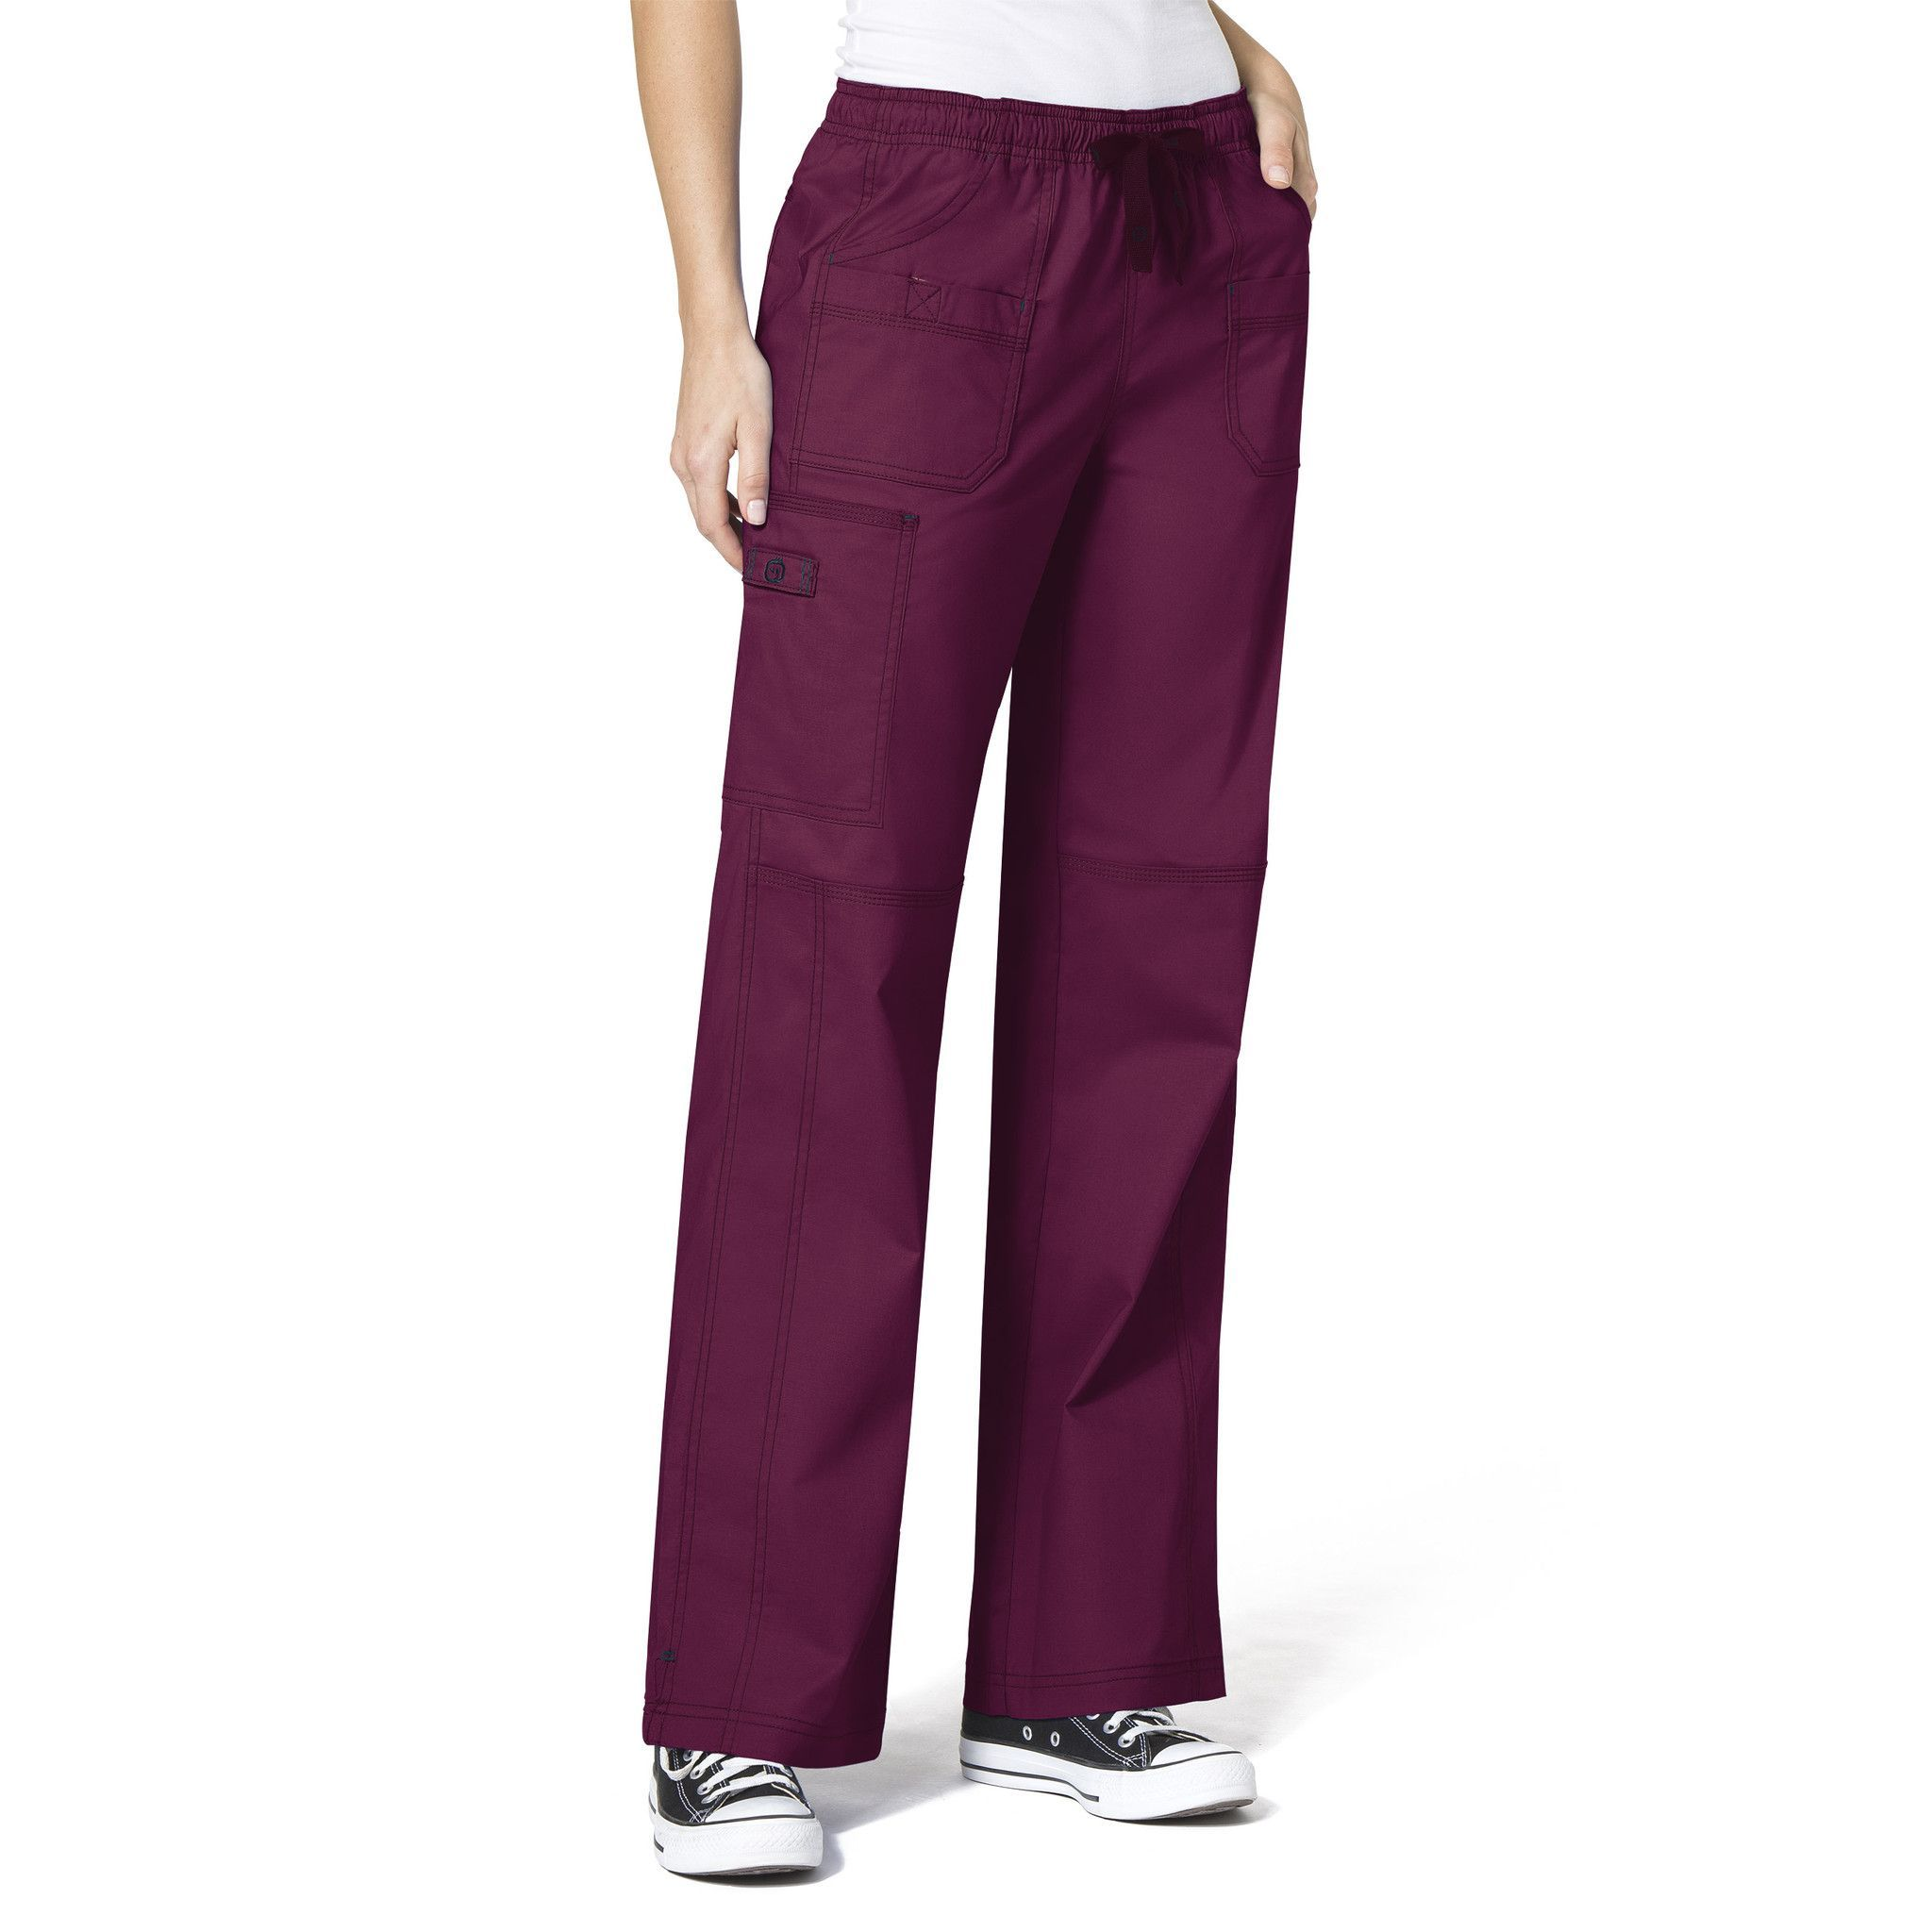 WonderWink Faith Multi-Pocket Cargo Pant - 5108